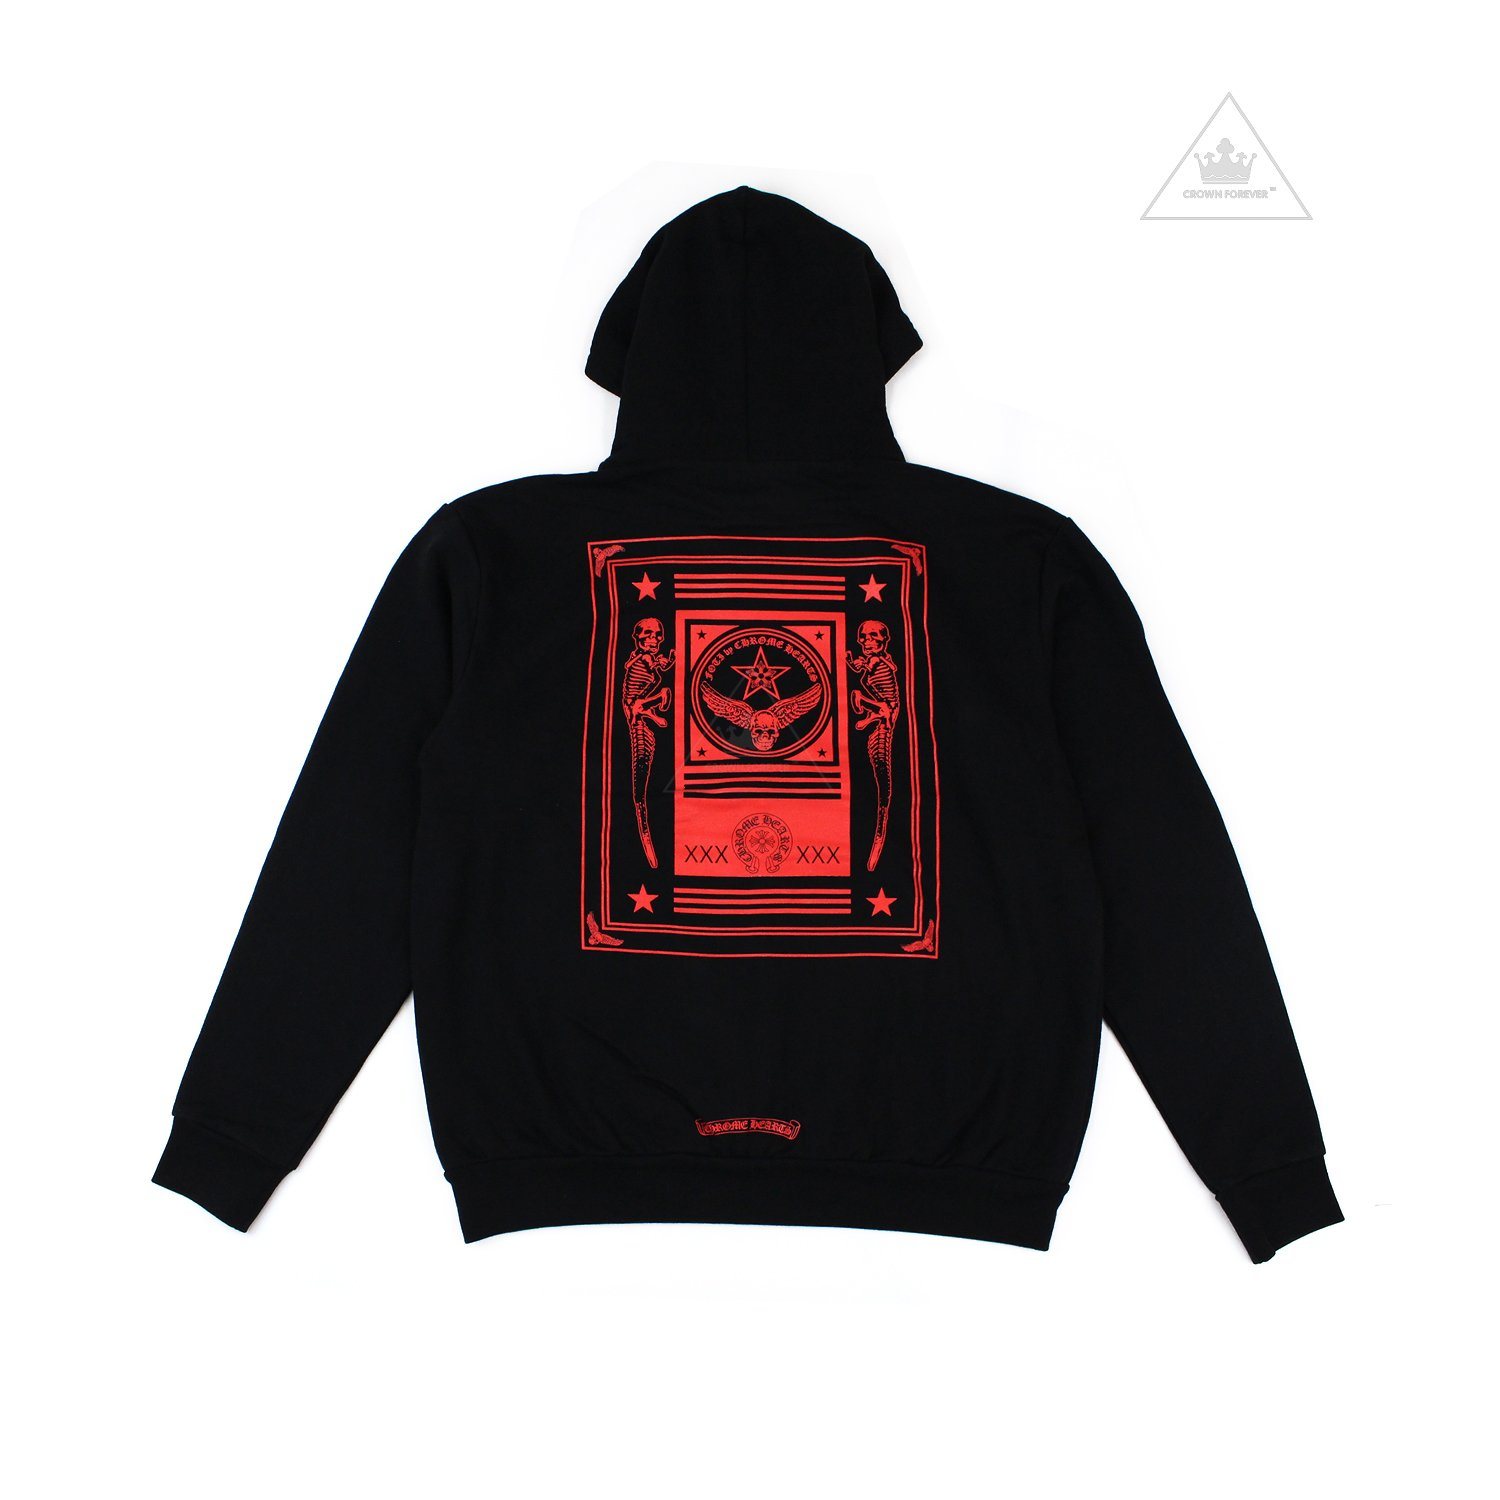 CH Foti Zip Hoodie by CHROME HEARTS, available on crownforeverla.com for $600 Kylie Jenner Outerwear SIMILAR PRODUCT